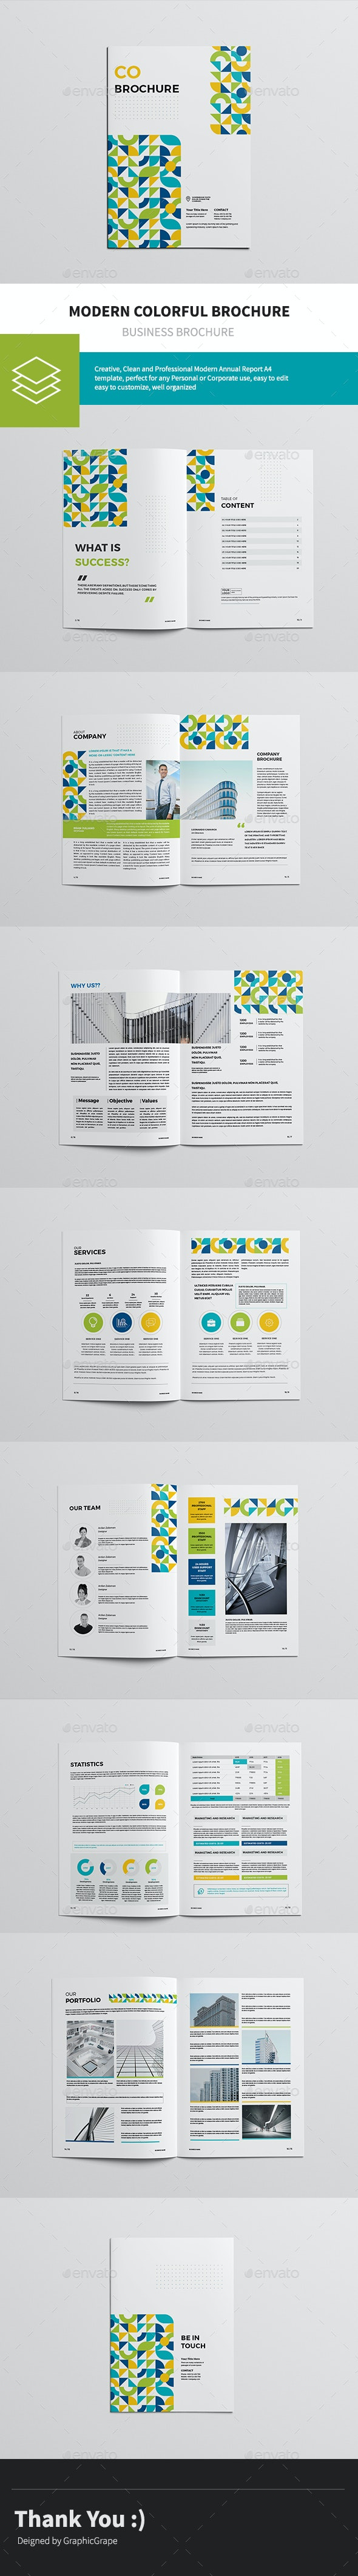 Modern Colorful Brochure - Corporate Brochures